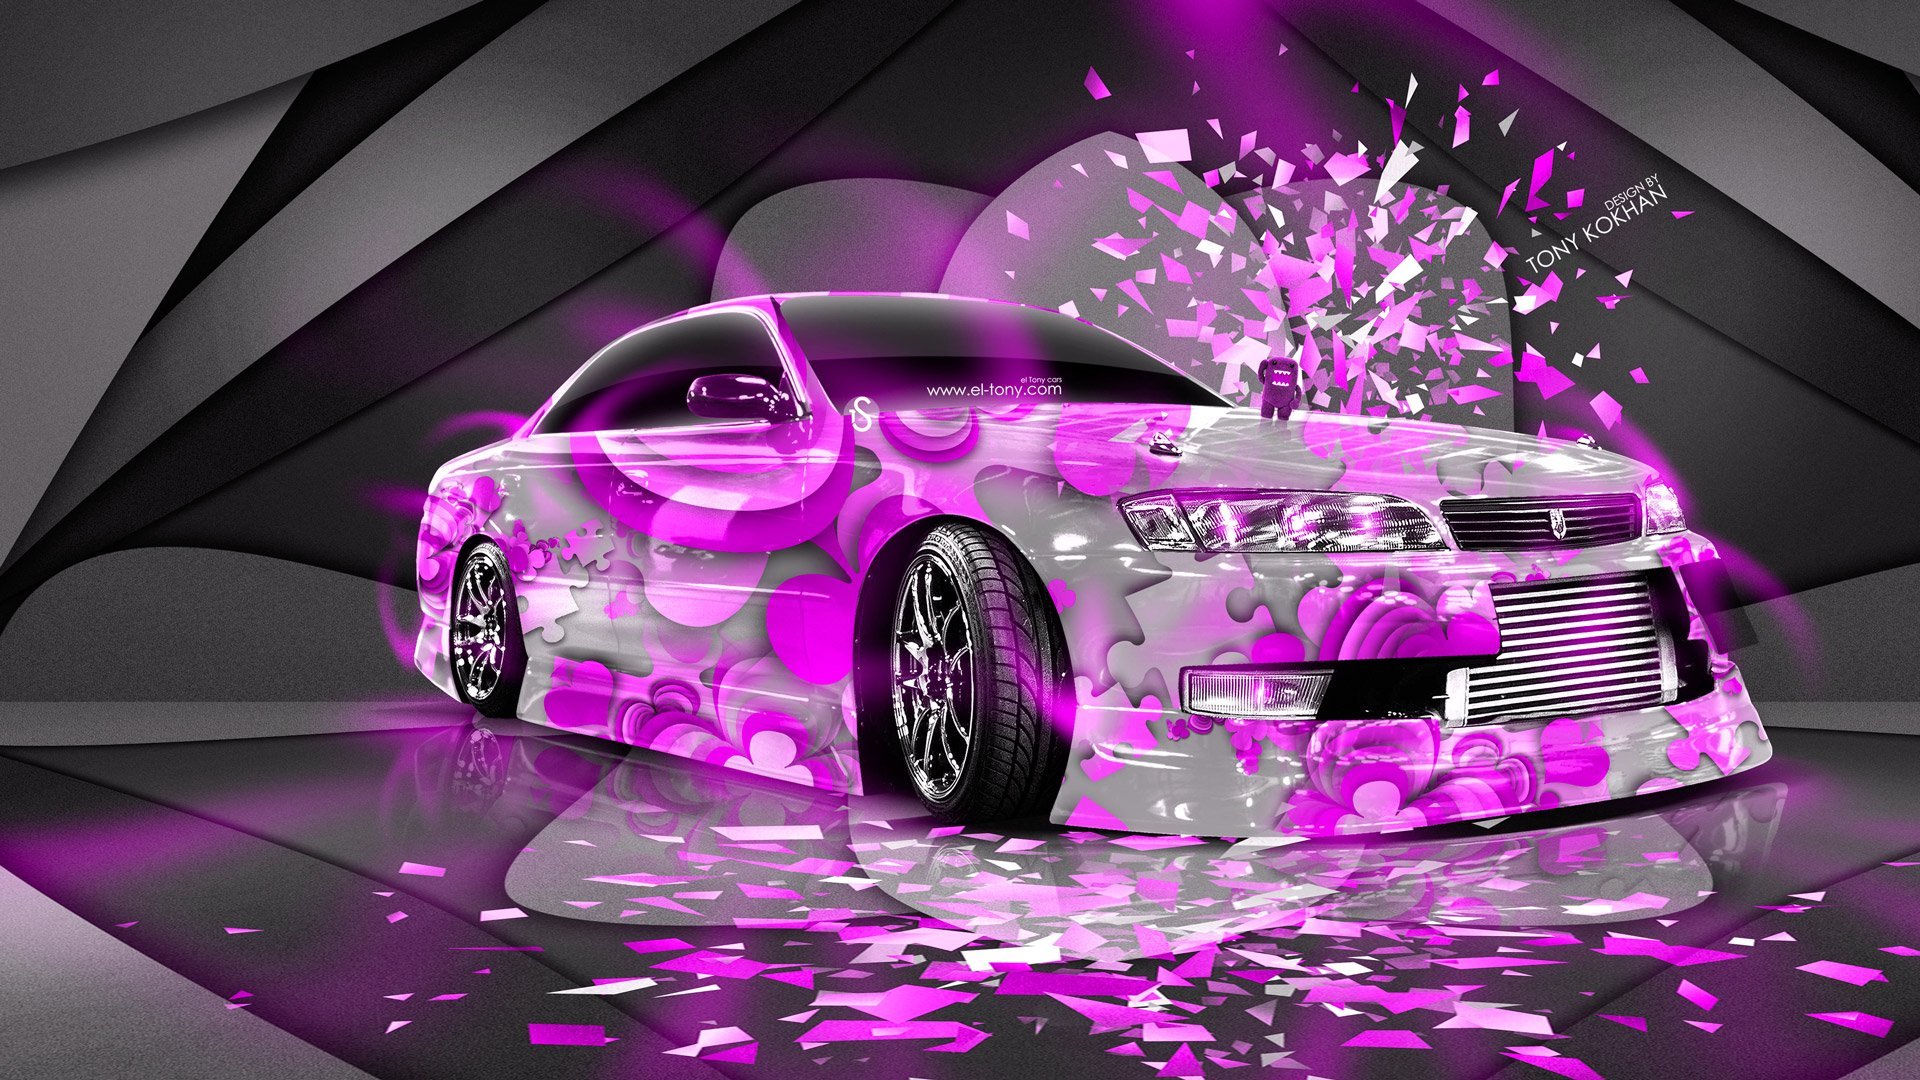 Neon Car Wallpaper WallpaperSafari - Cool cars 2014